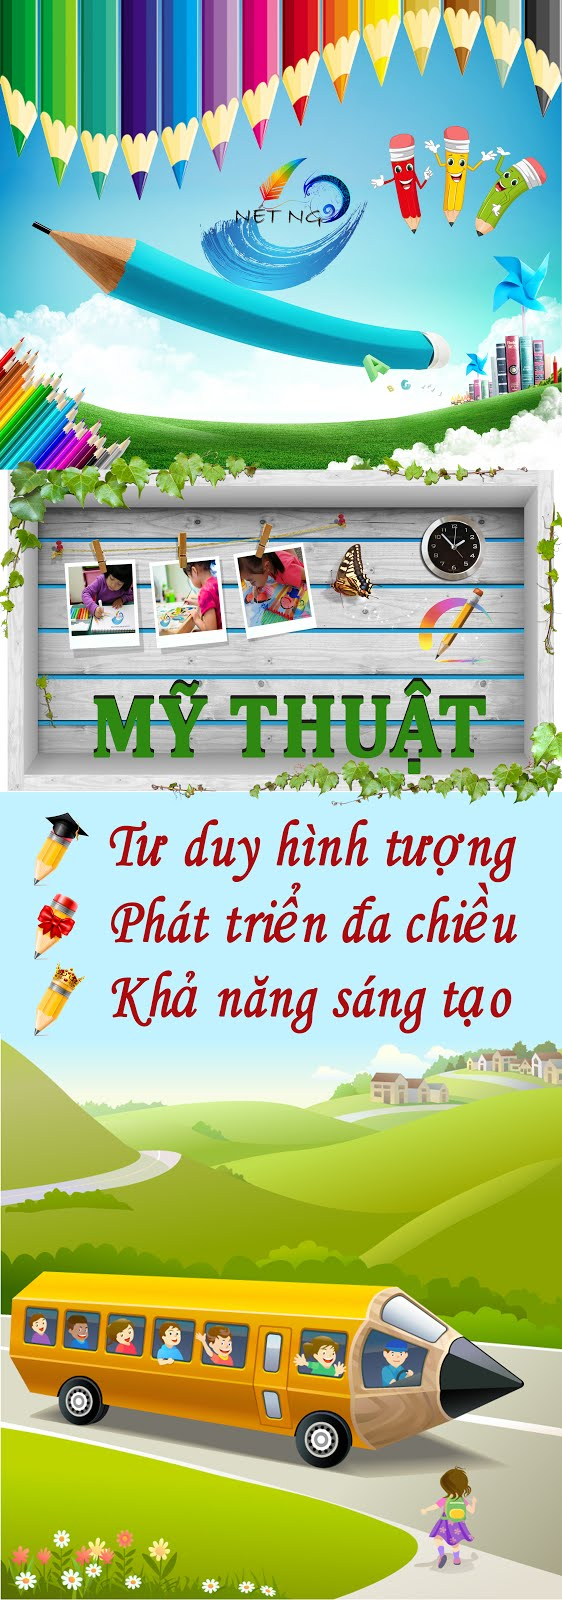 MỸ THUẬT TƯ DUY NÉT NGỘ